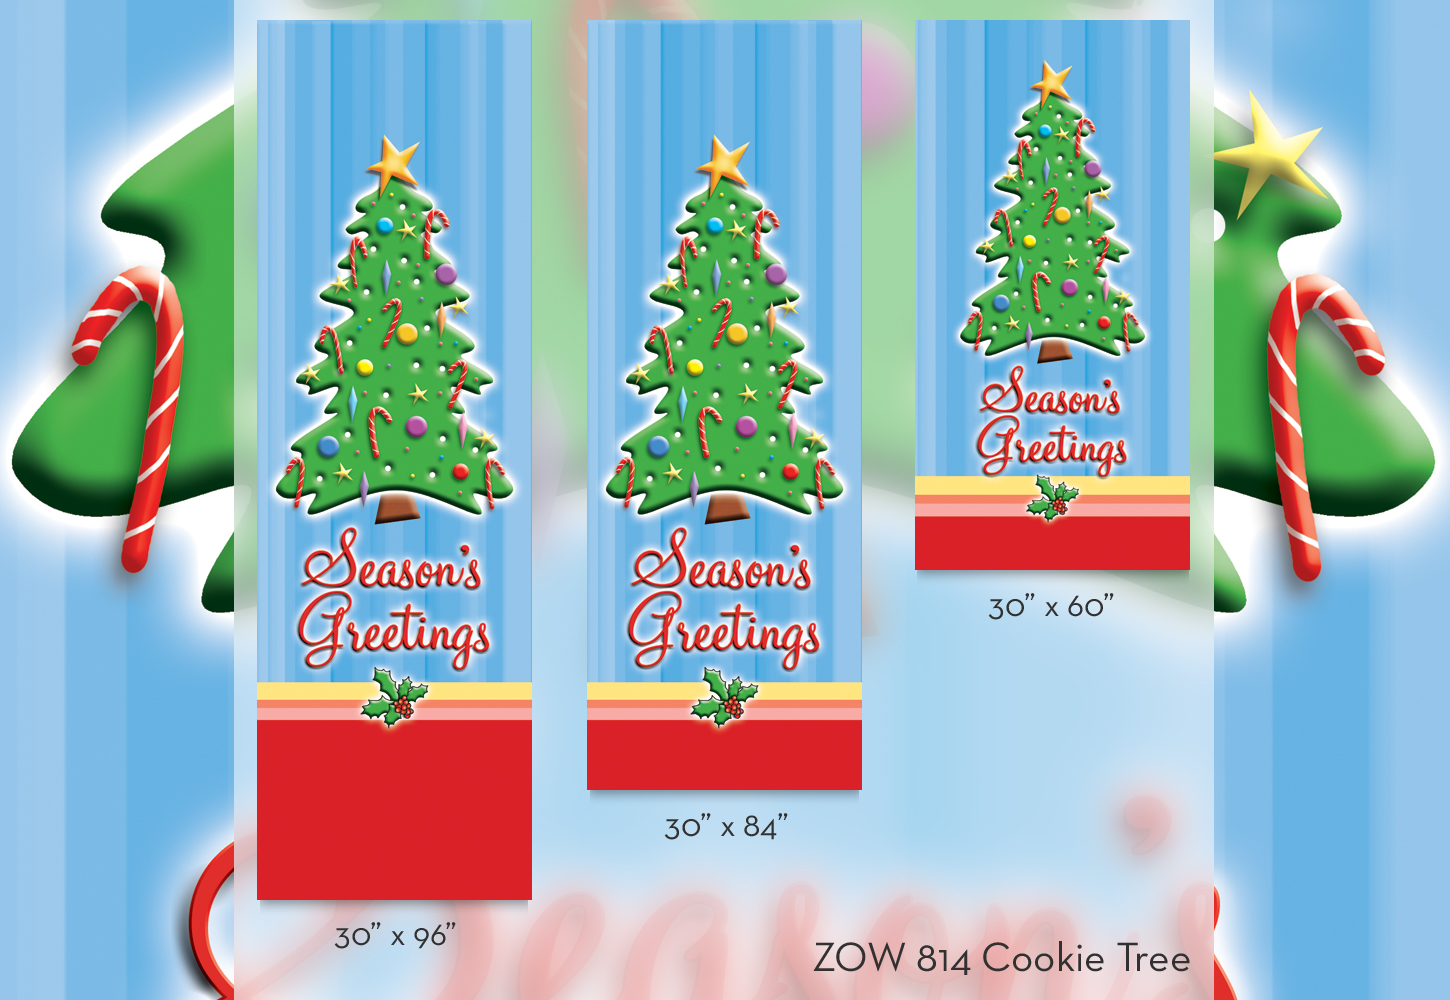 ZOW 814 Cookie Tree